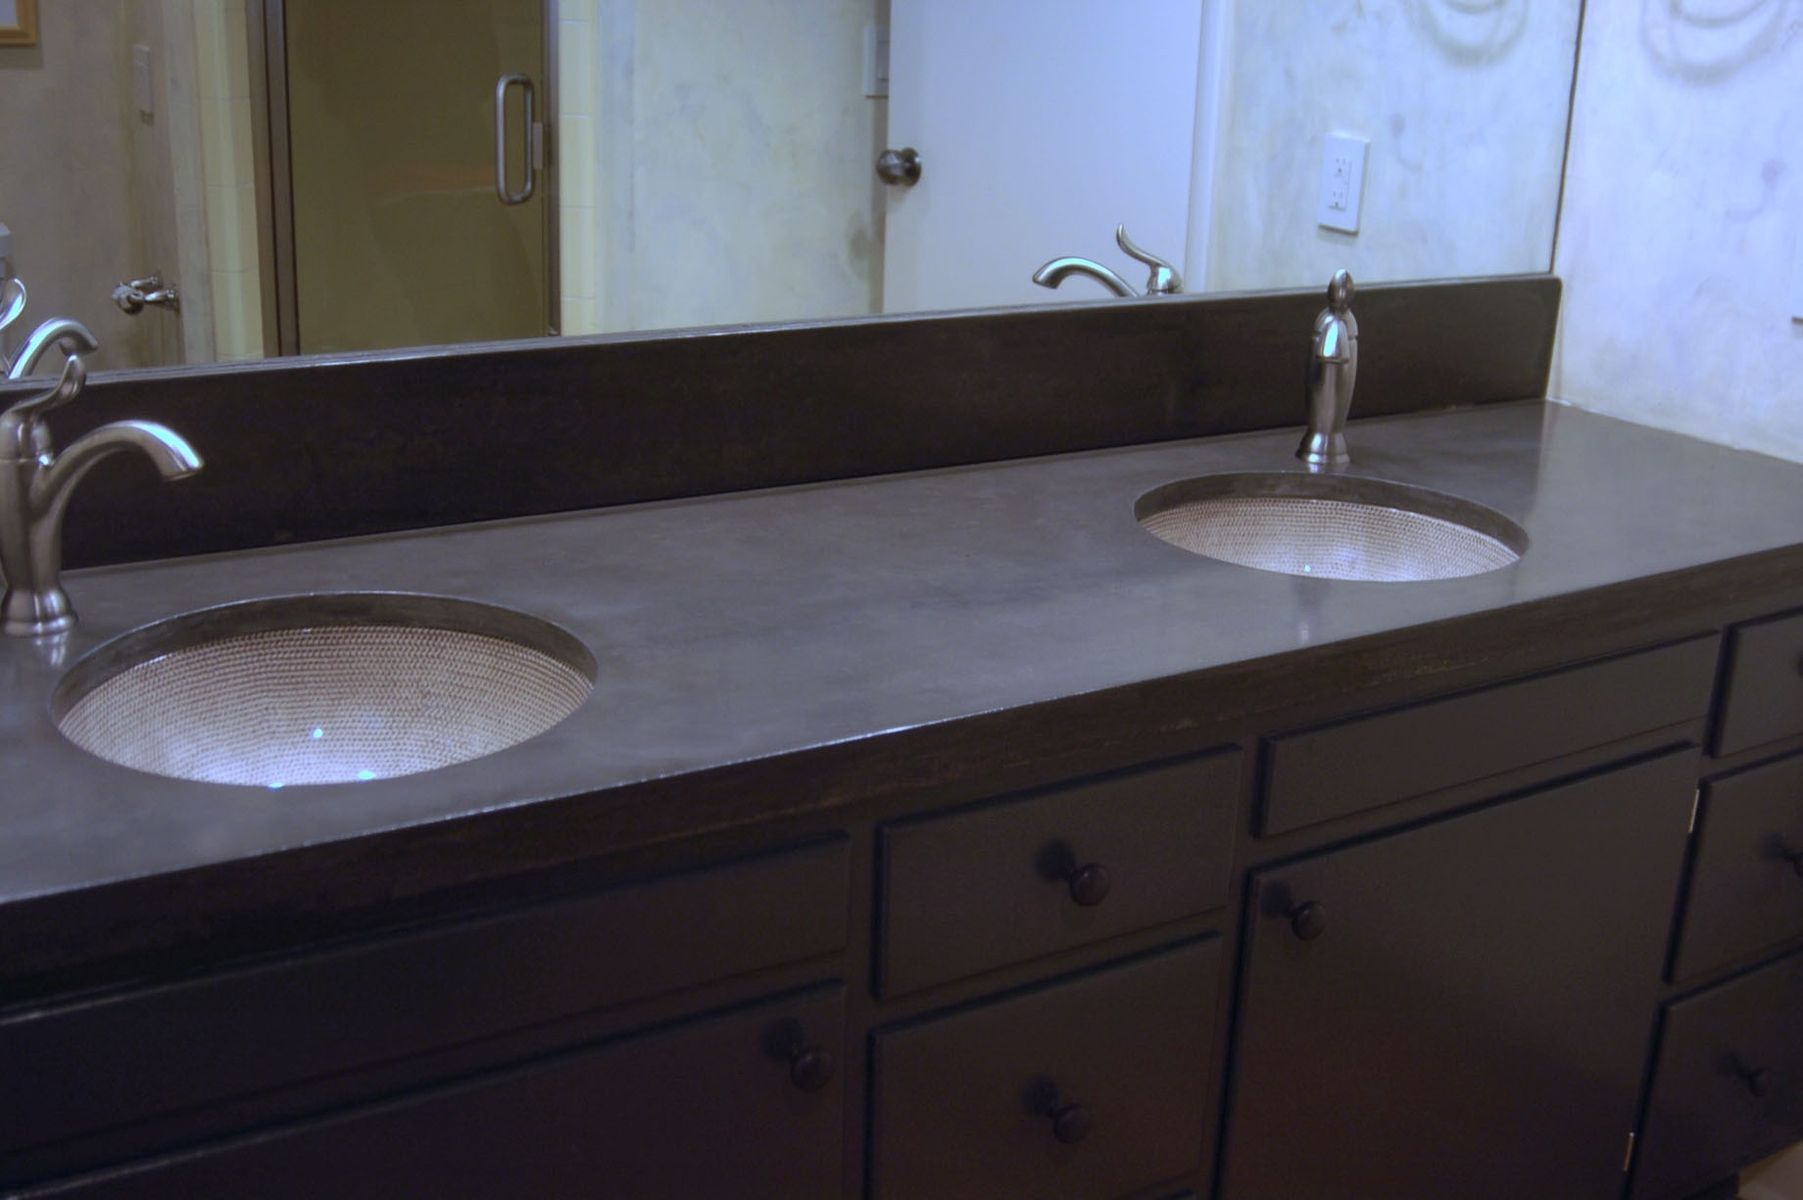 Hand Crafted Concrete Vanity Countertop With Matching Backsplash By Vandorn Turpen Custommade Com